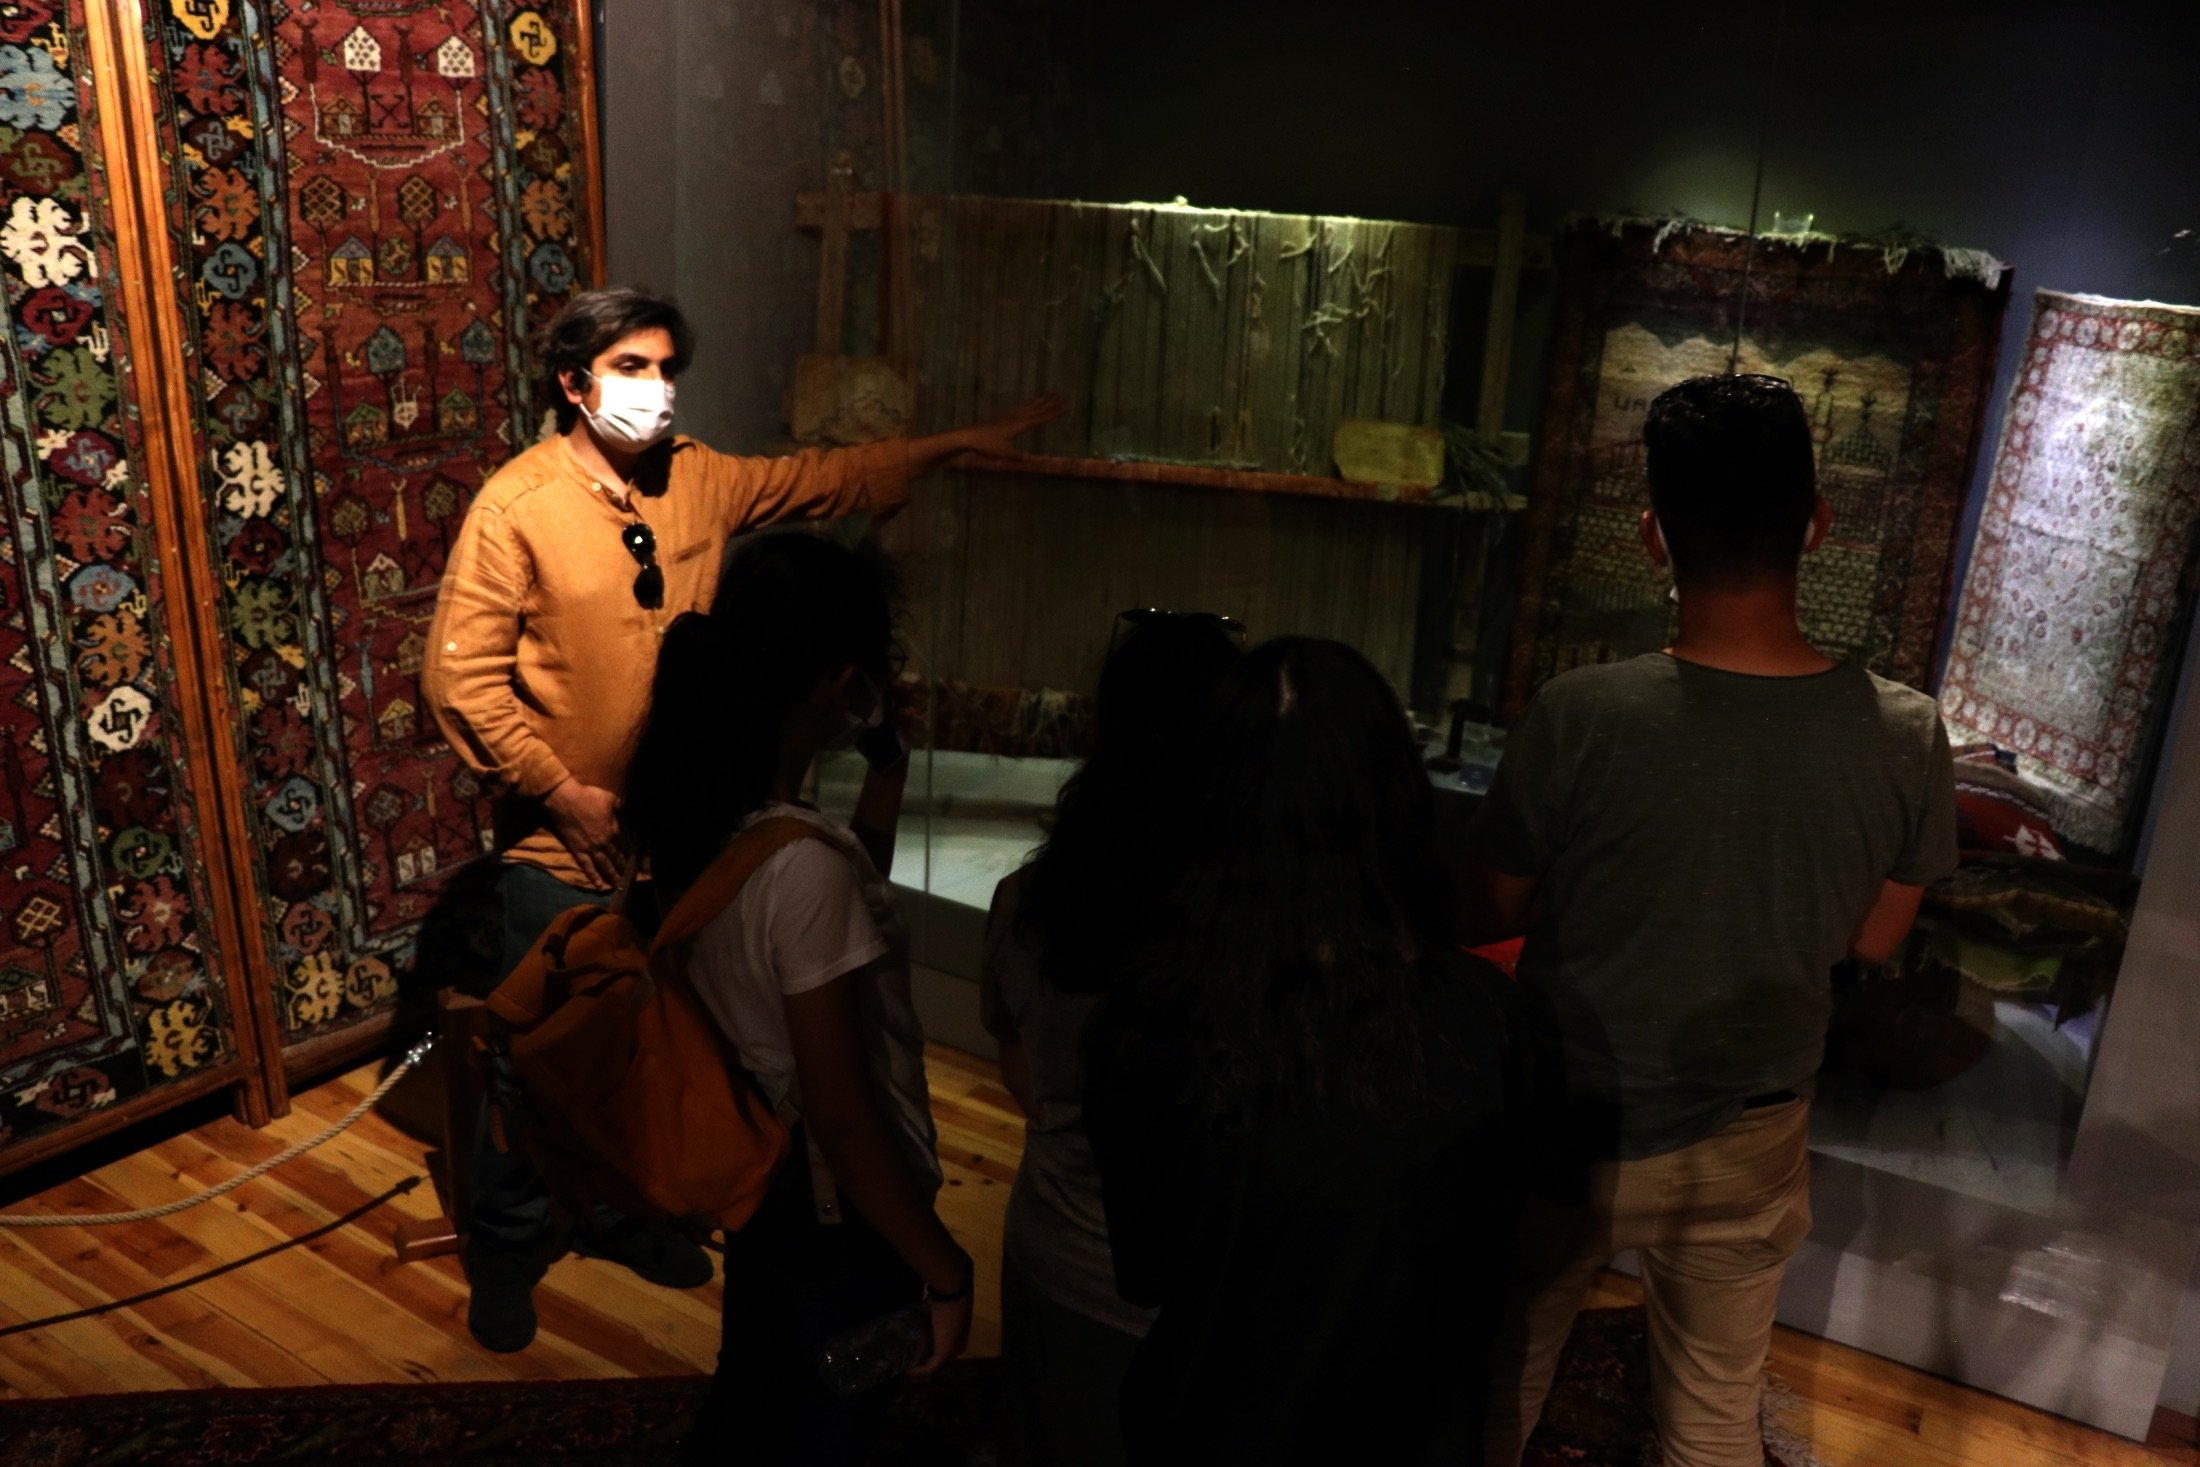 Visitors inspect a historical 100-year-old carpet as it is displayed in the Sille Museum in the Sille district of Konya, Turkey, Aug. 11, 2021. (AA Photo)